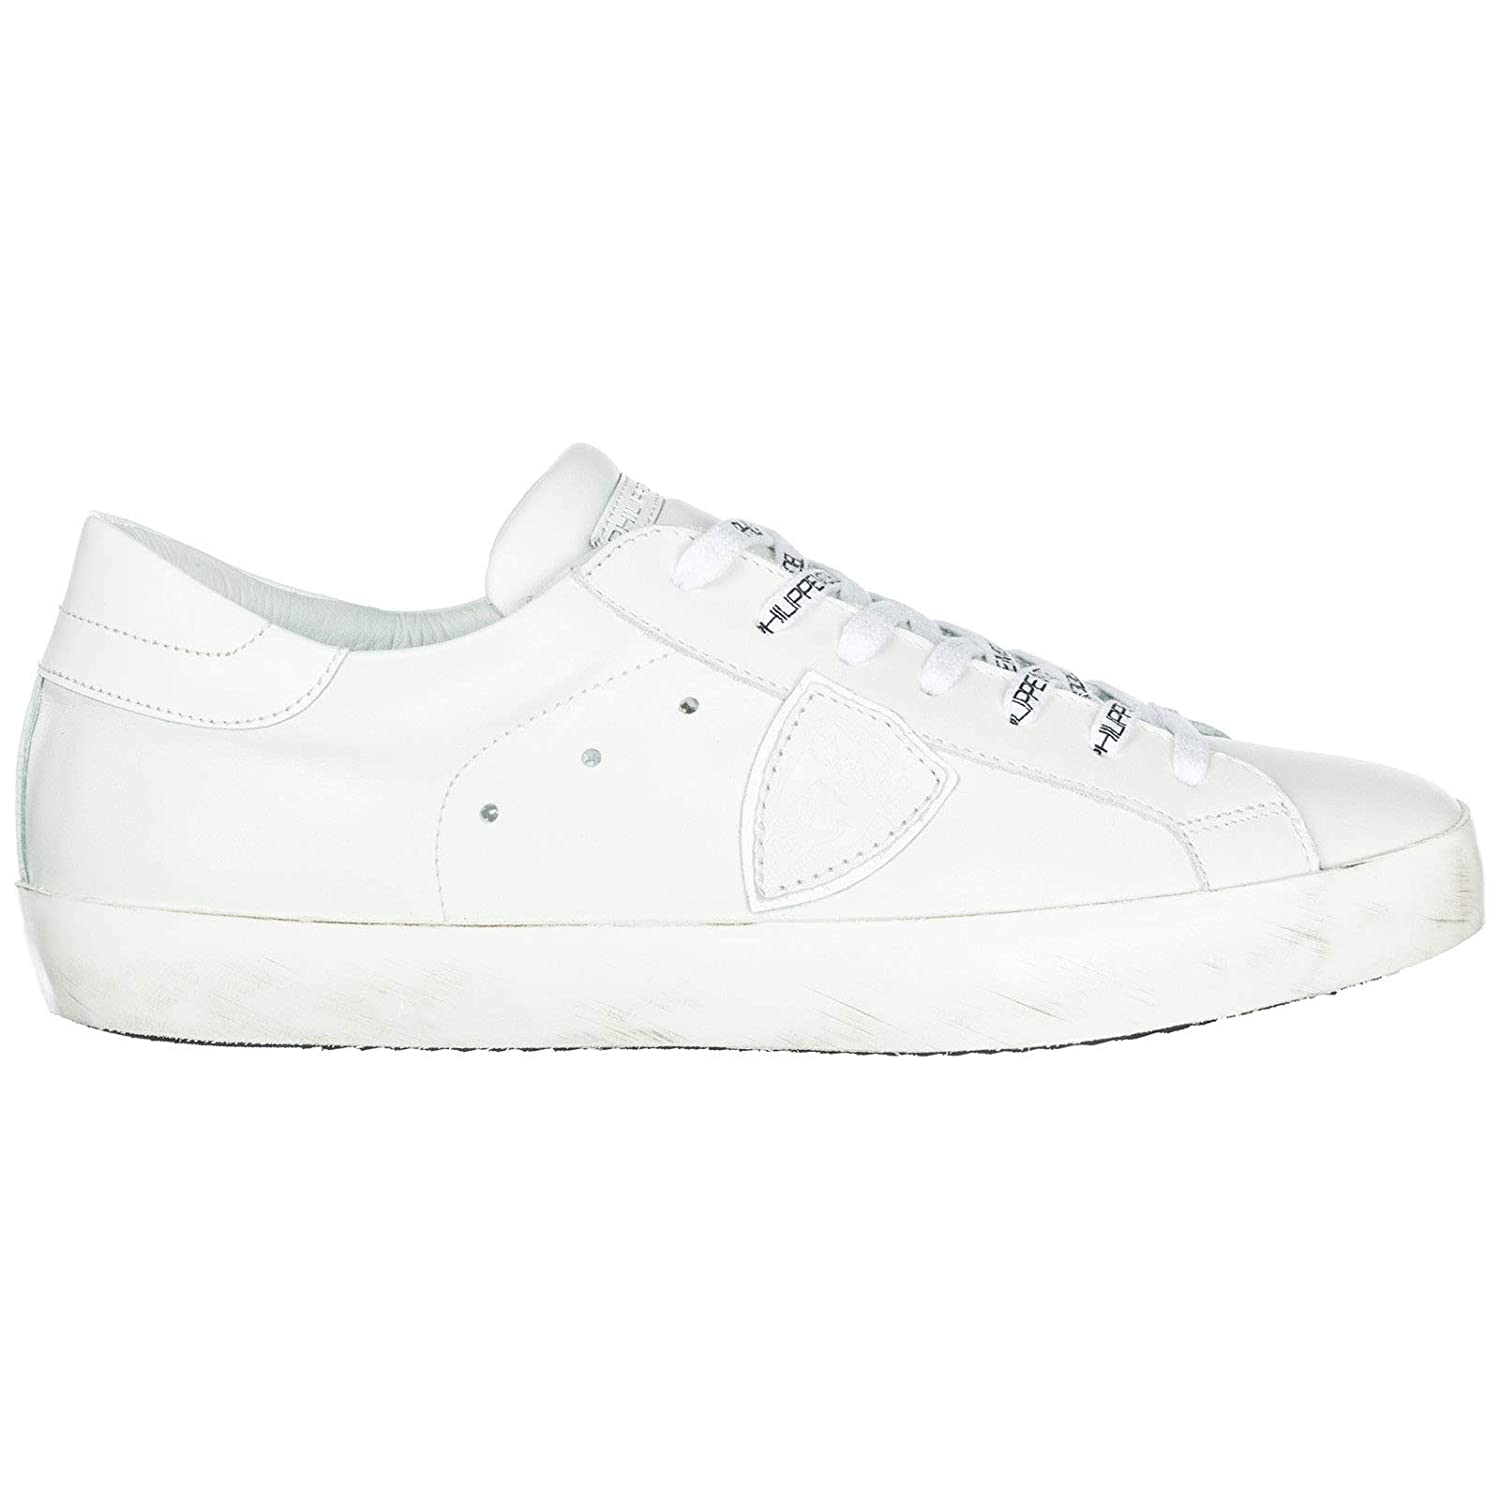 Bianco PHILIPPE MODEL Men Sneakers Bianco